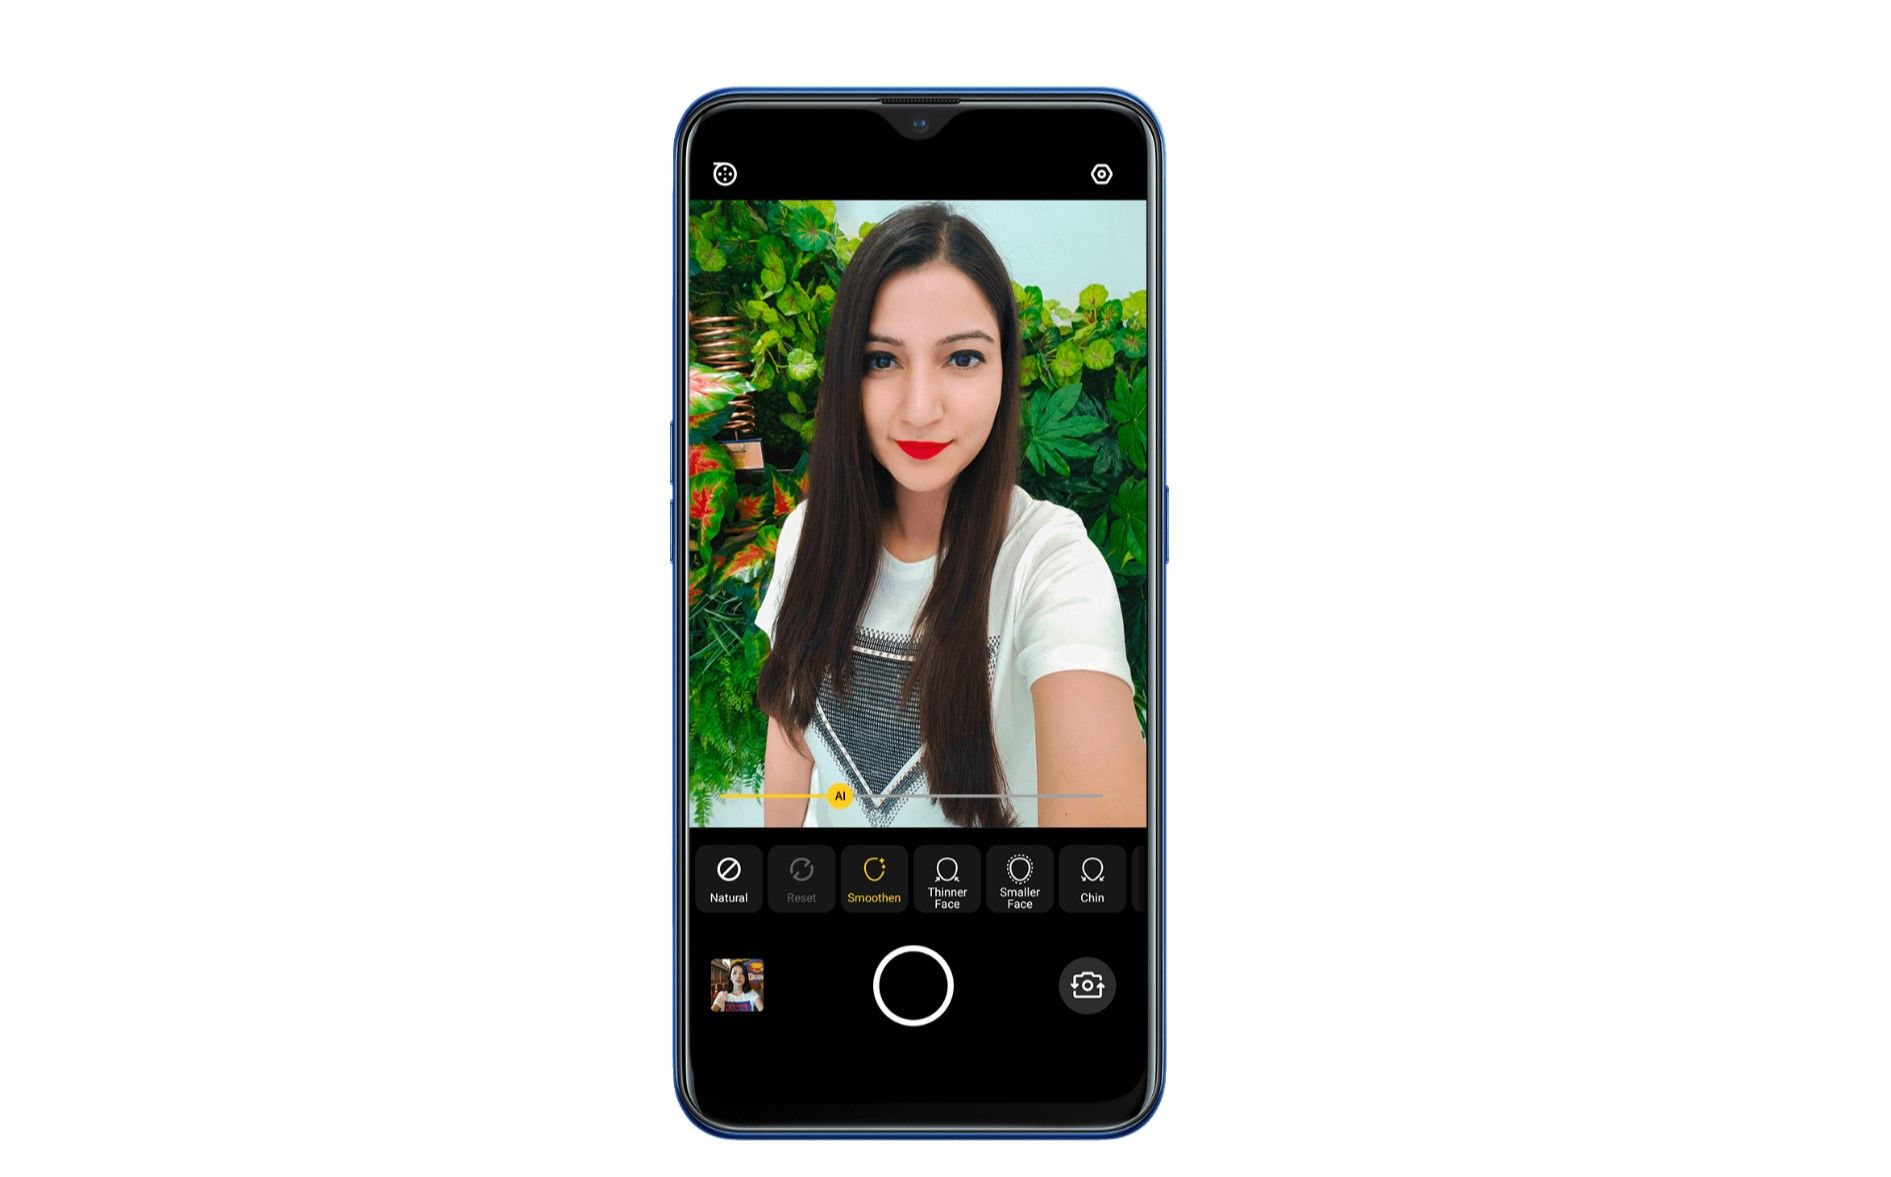 OPPO A9 16MP Selfie Camera AI Beautification Features